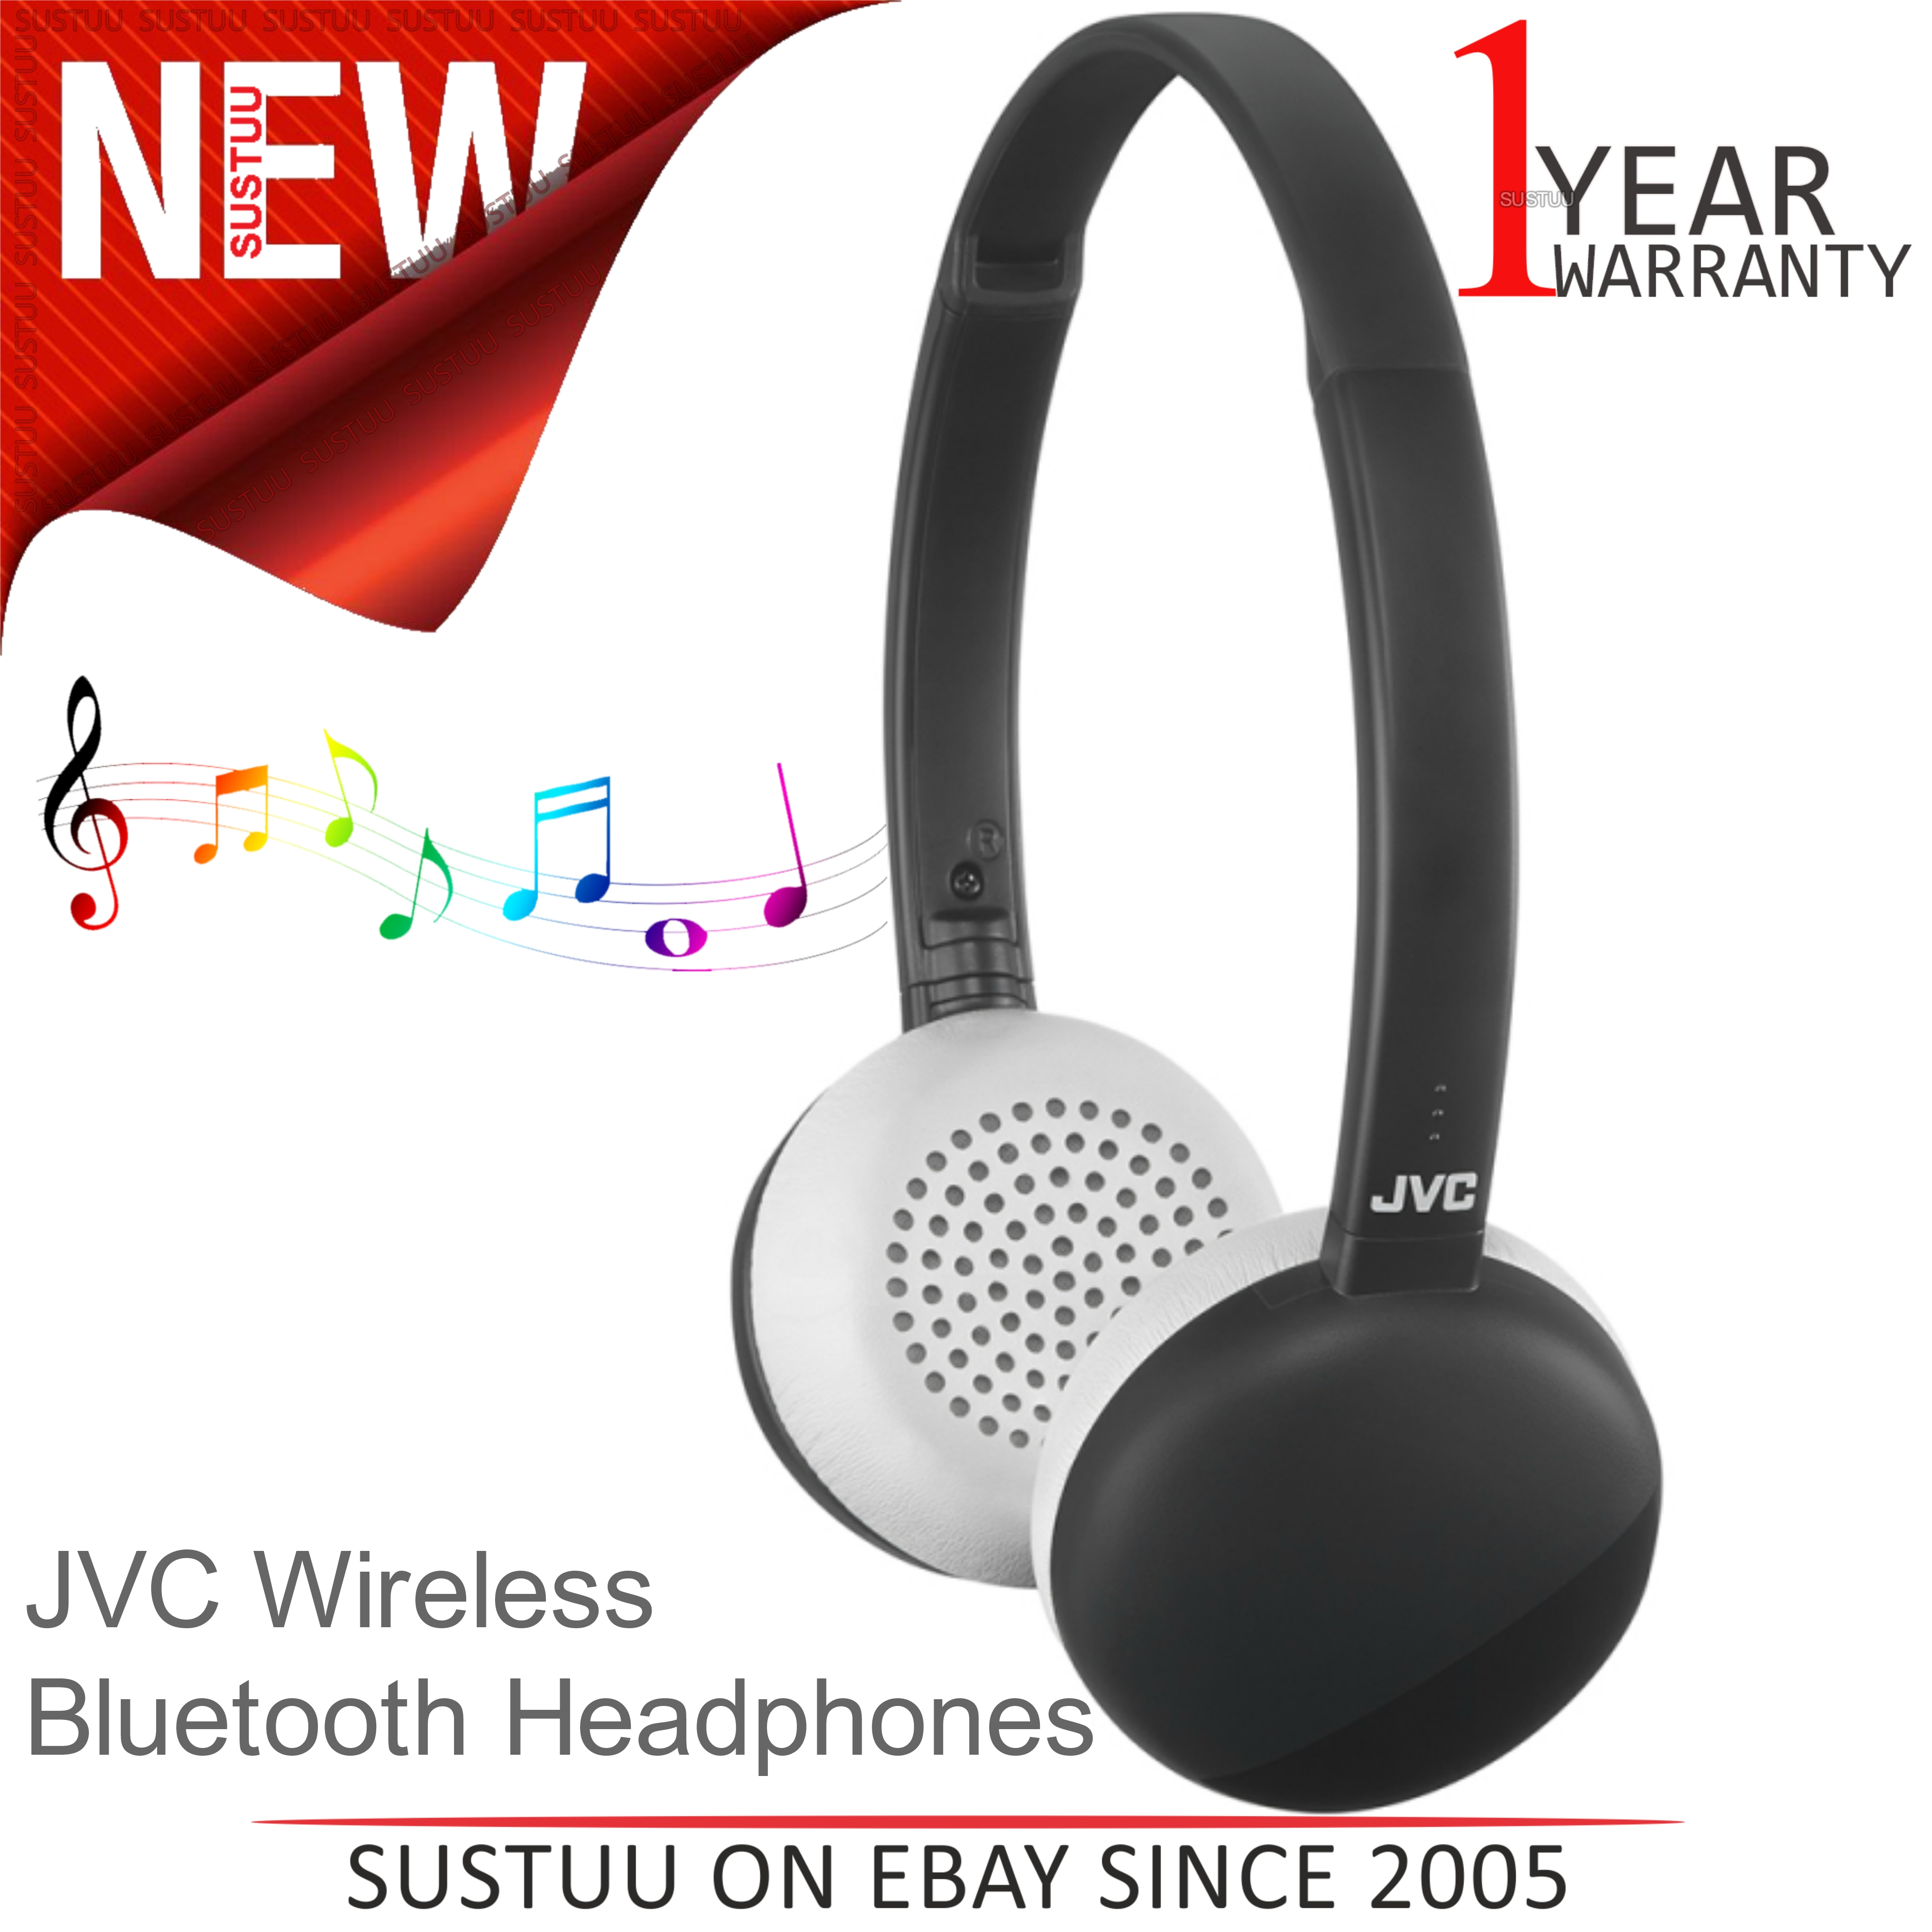 c70fe7ee0c3 Details about JVC HAS20BTBE Flats Wireless Bluetooth Headphones│3 Button  Remote & Mic│Black